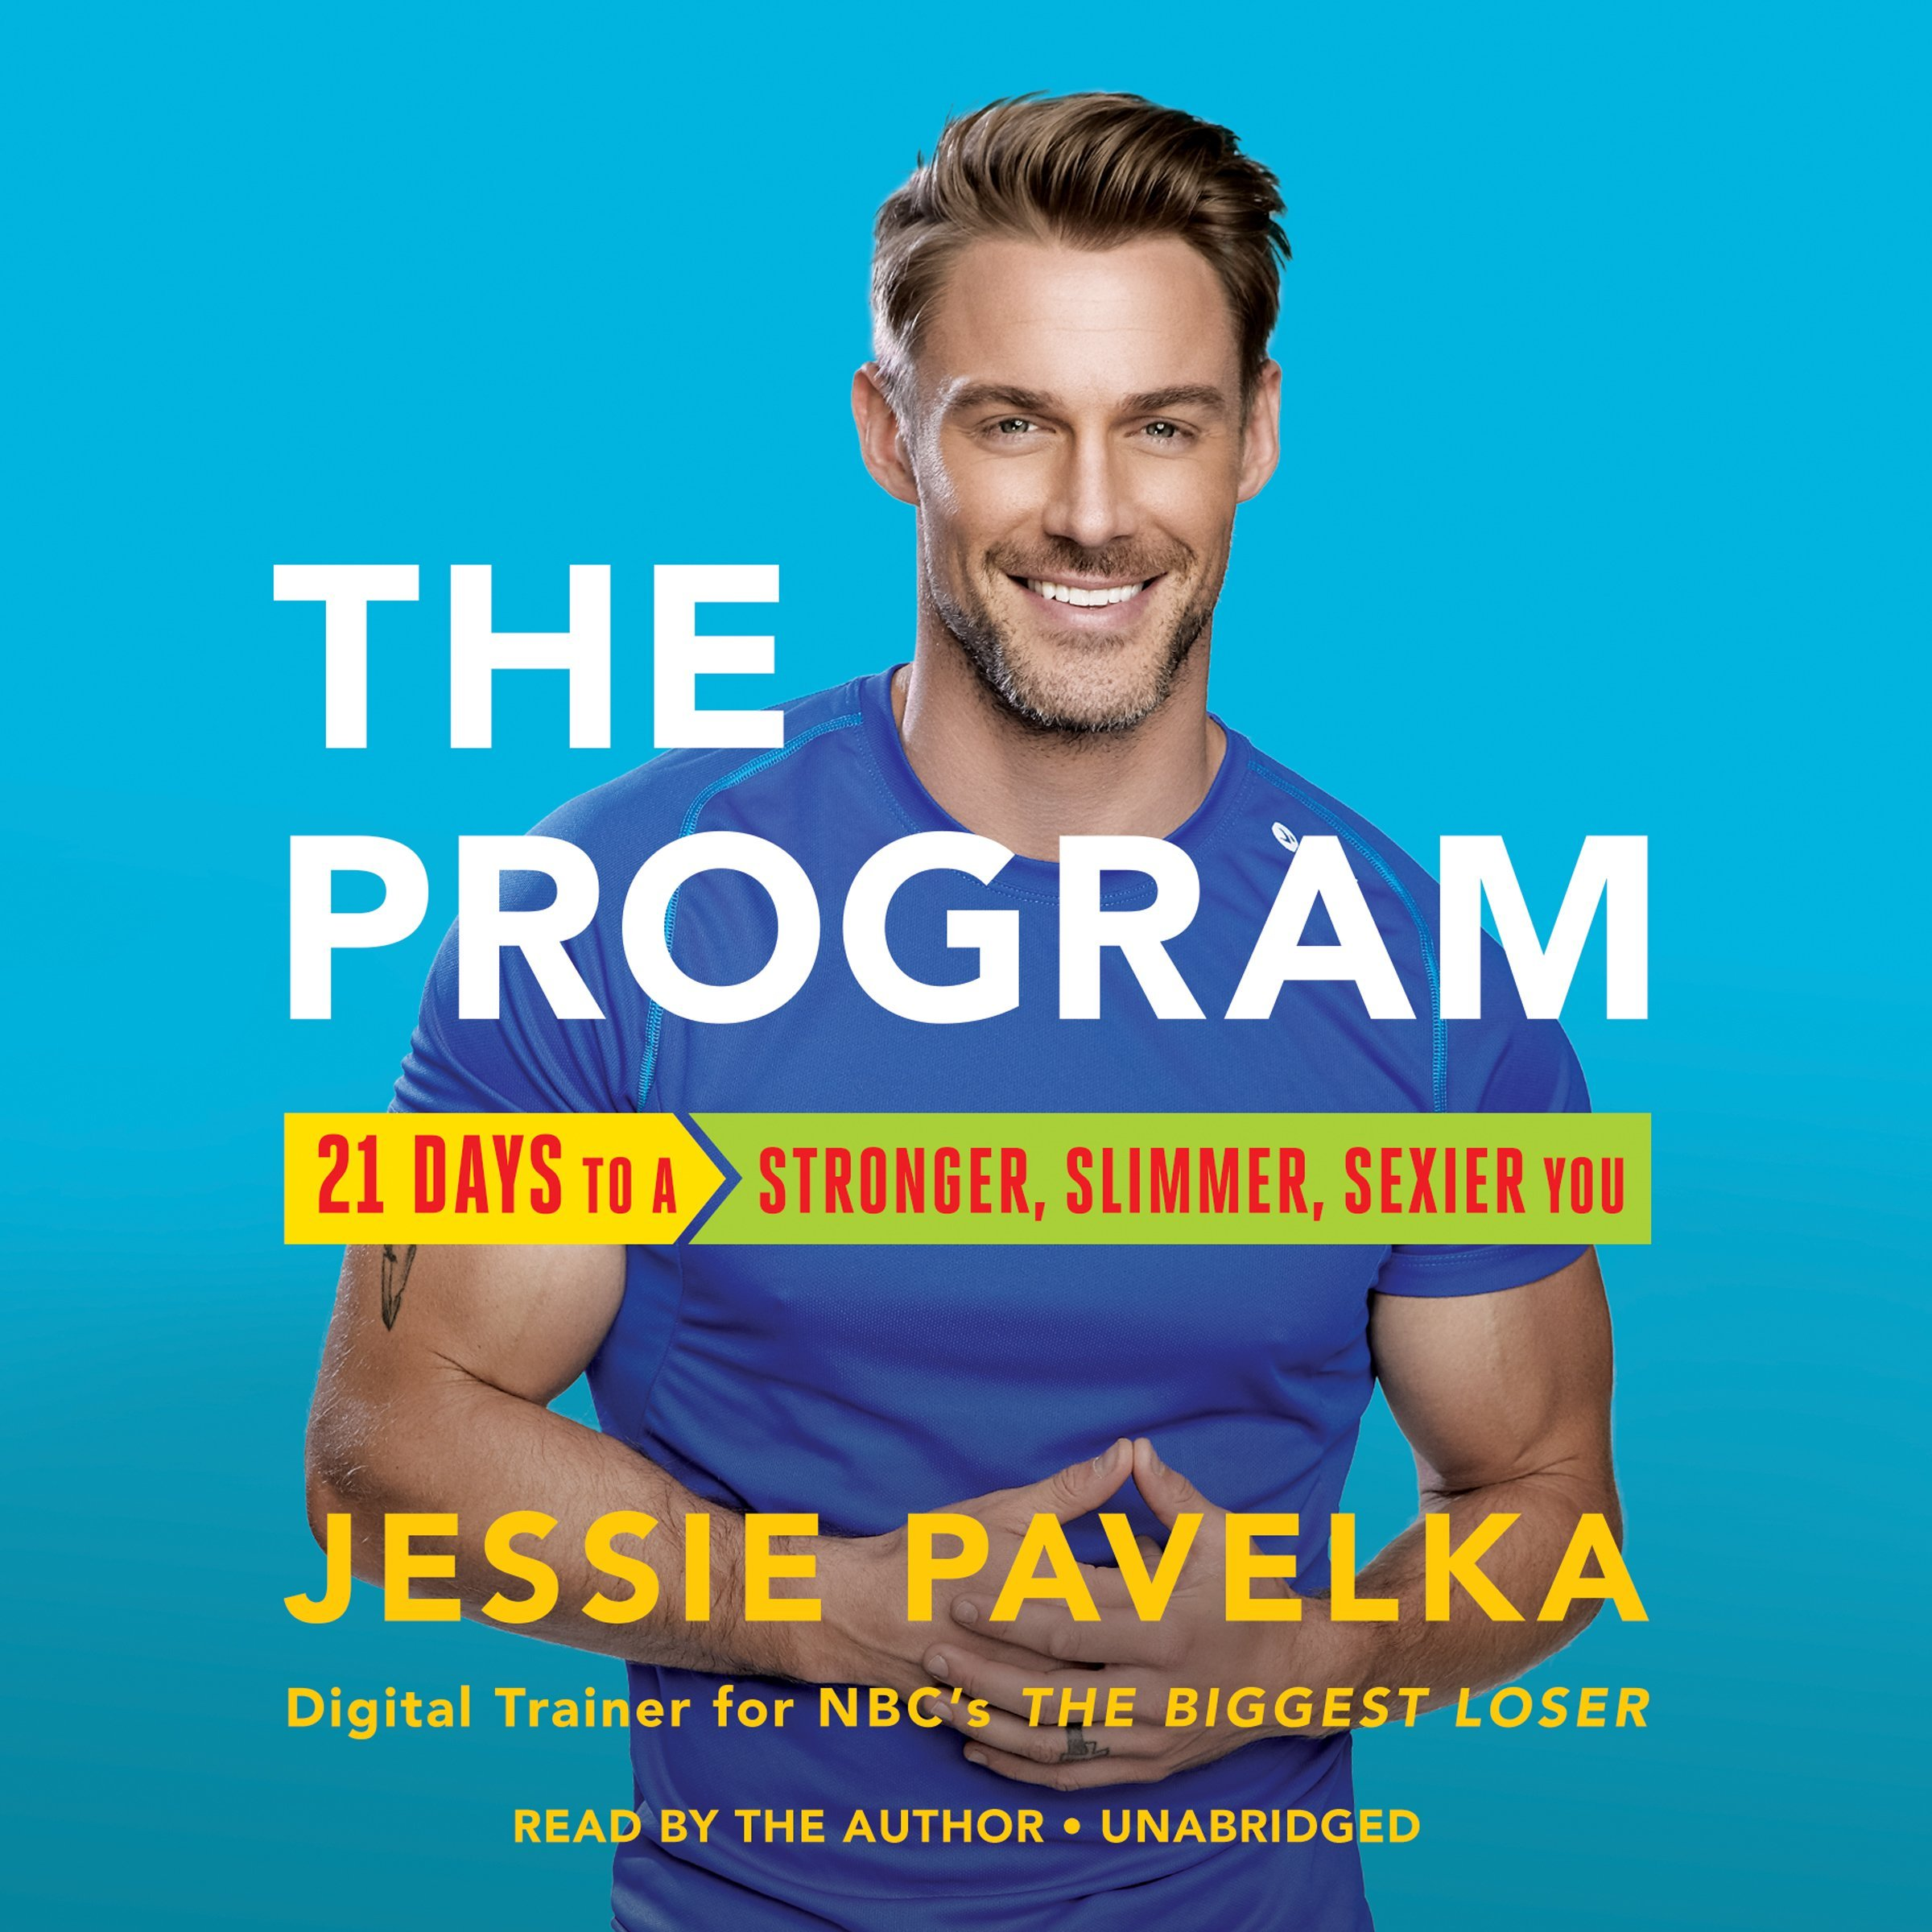 The Program: 21 Days to a Stronger, Slimmer, Sexier You ...